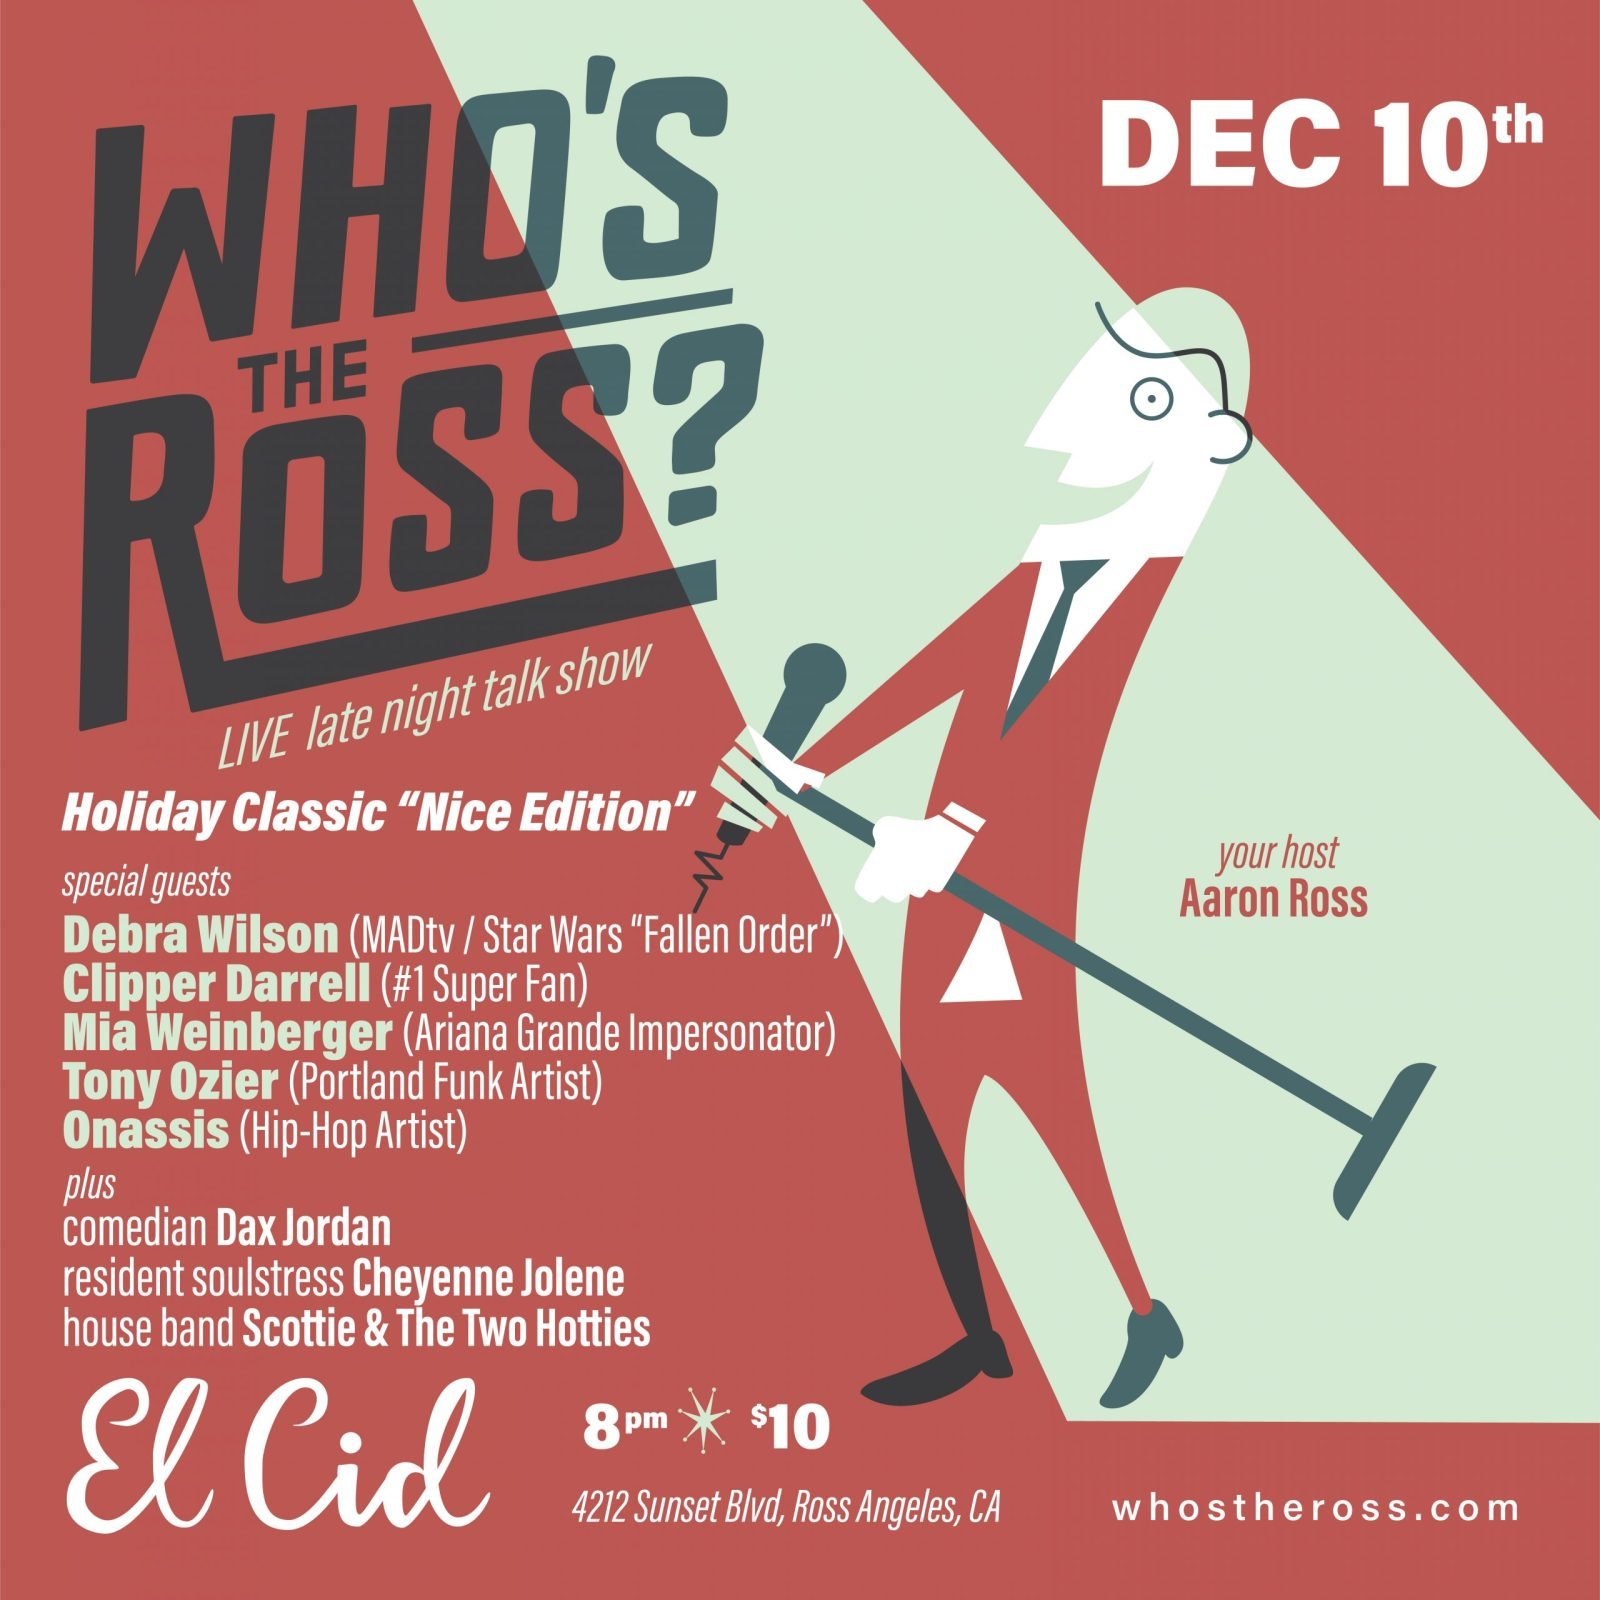 """""""Who's the Ross?"""" whos the ross Aaron Silver Lake LA Los Angeles comedy comedian Hollywood residency weekly El Cid comedian host late-night talk show performance sketch improv"""